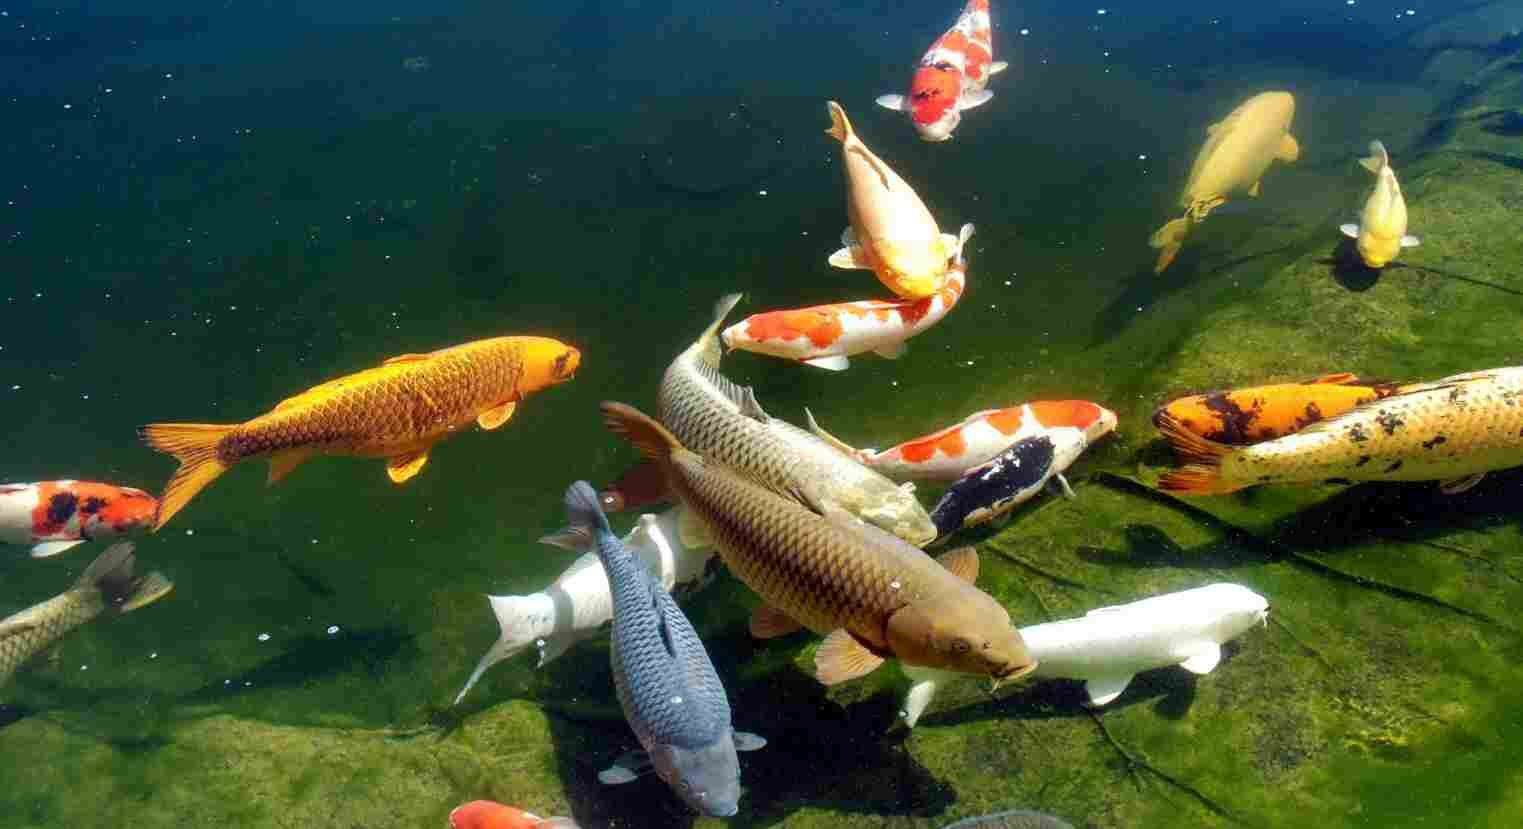 Koi fish pond wallpaper hd koi fish in the pond koi for Popular pond fish